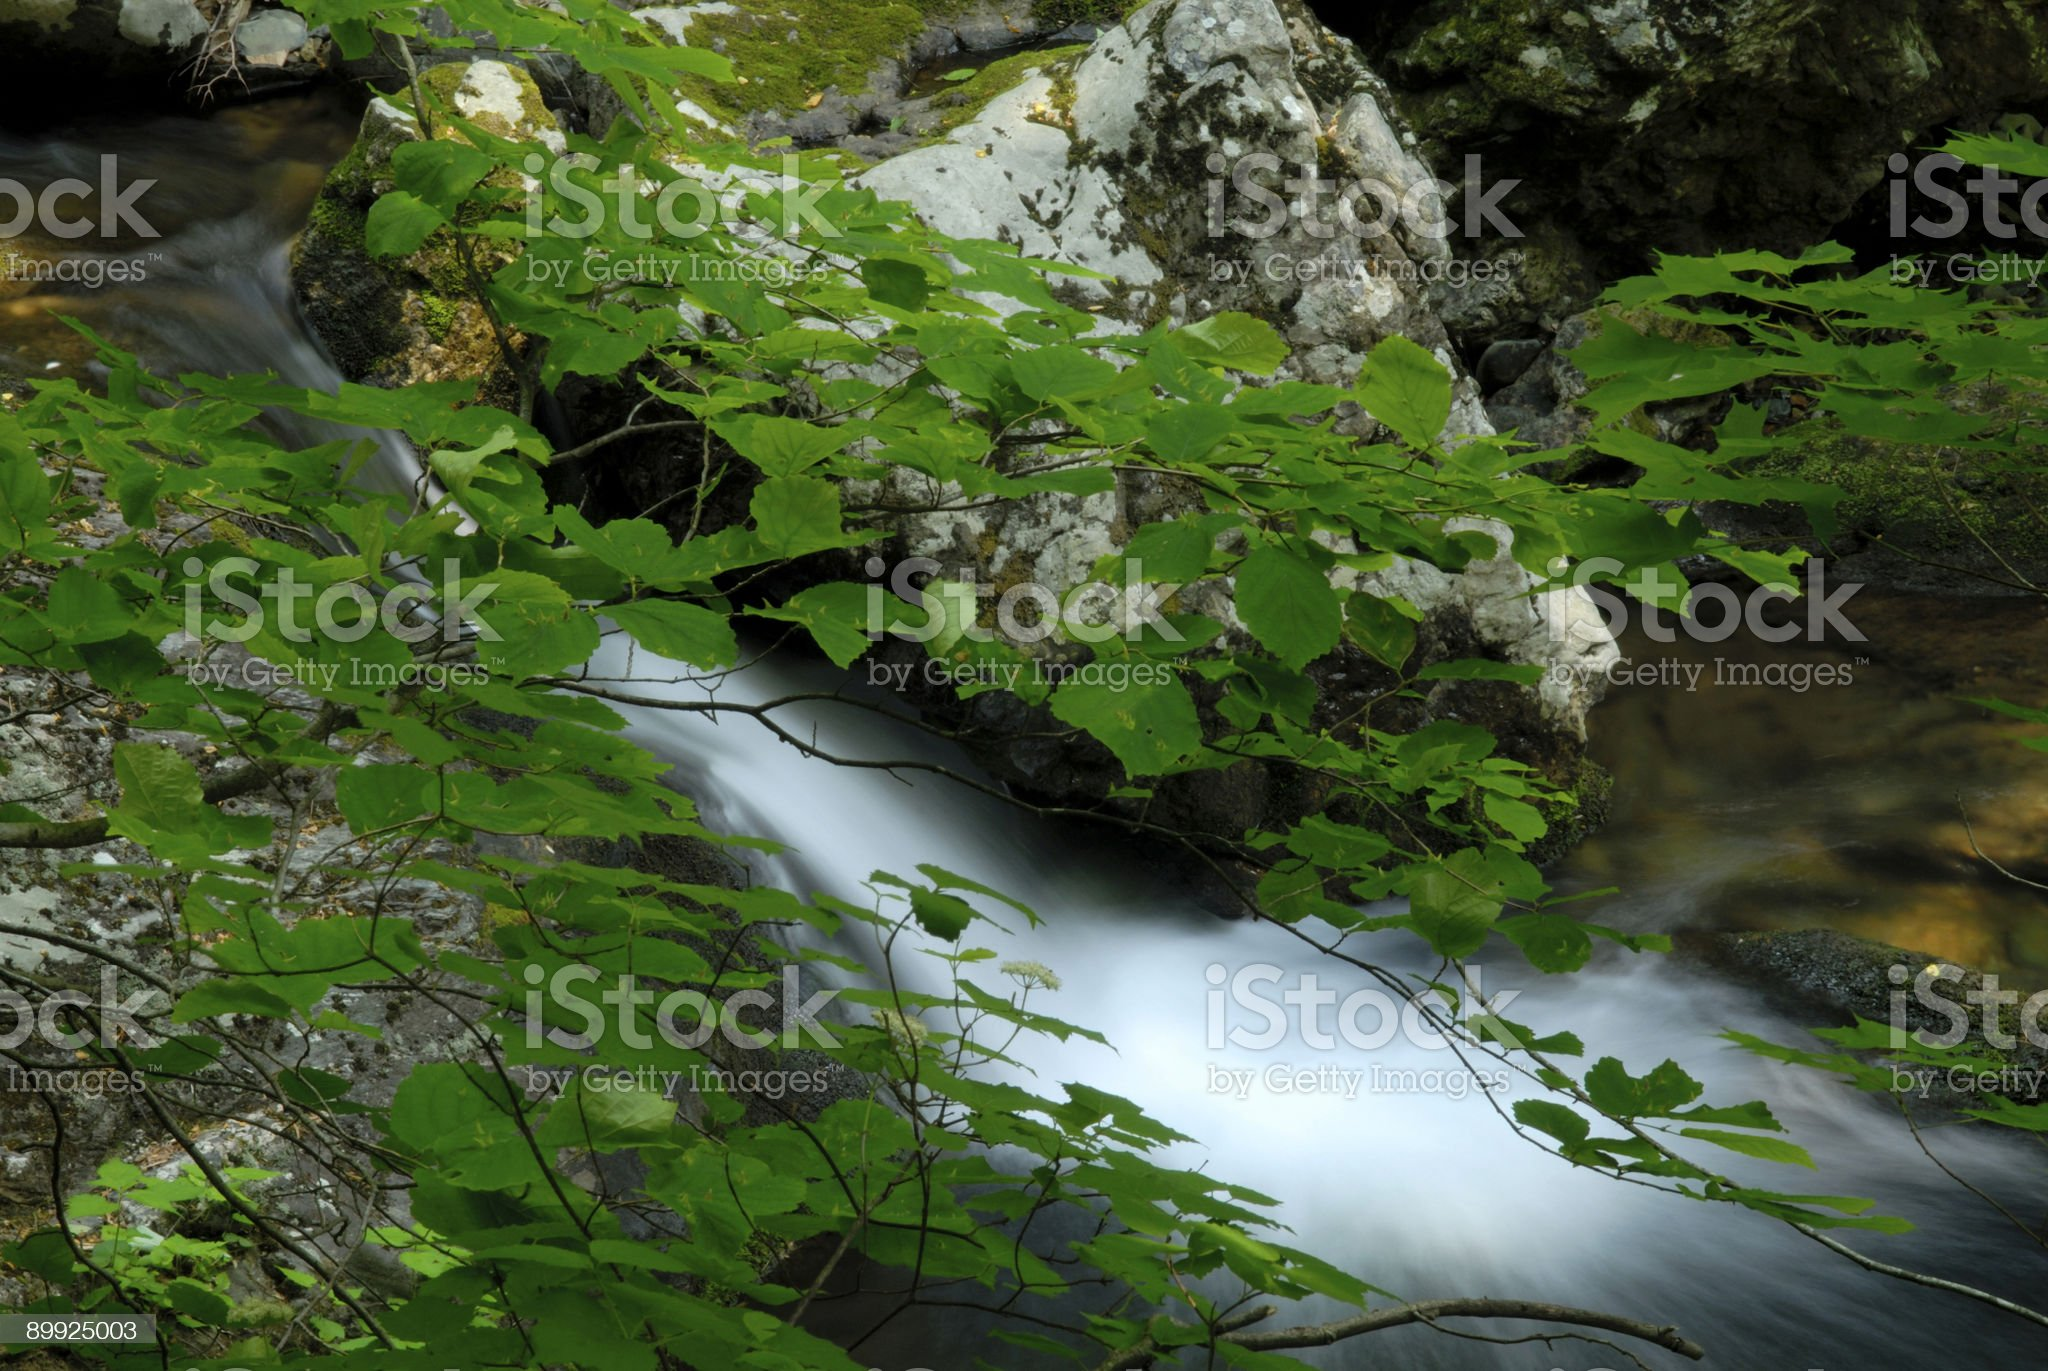 Flowing Water and Bush royalty-free stock photo